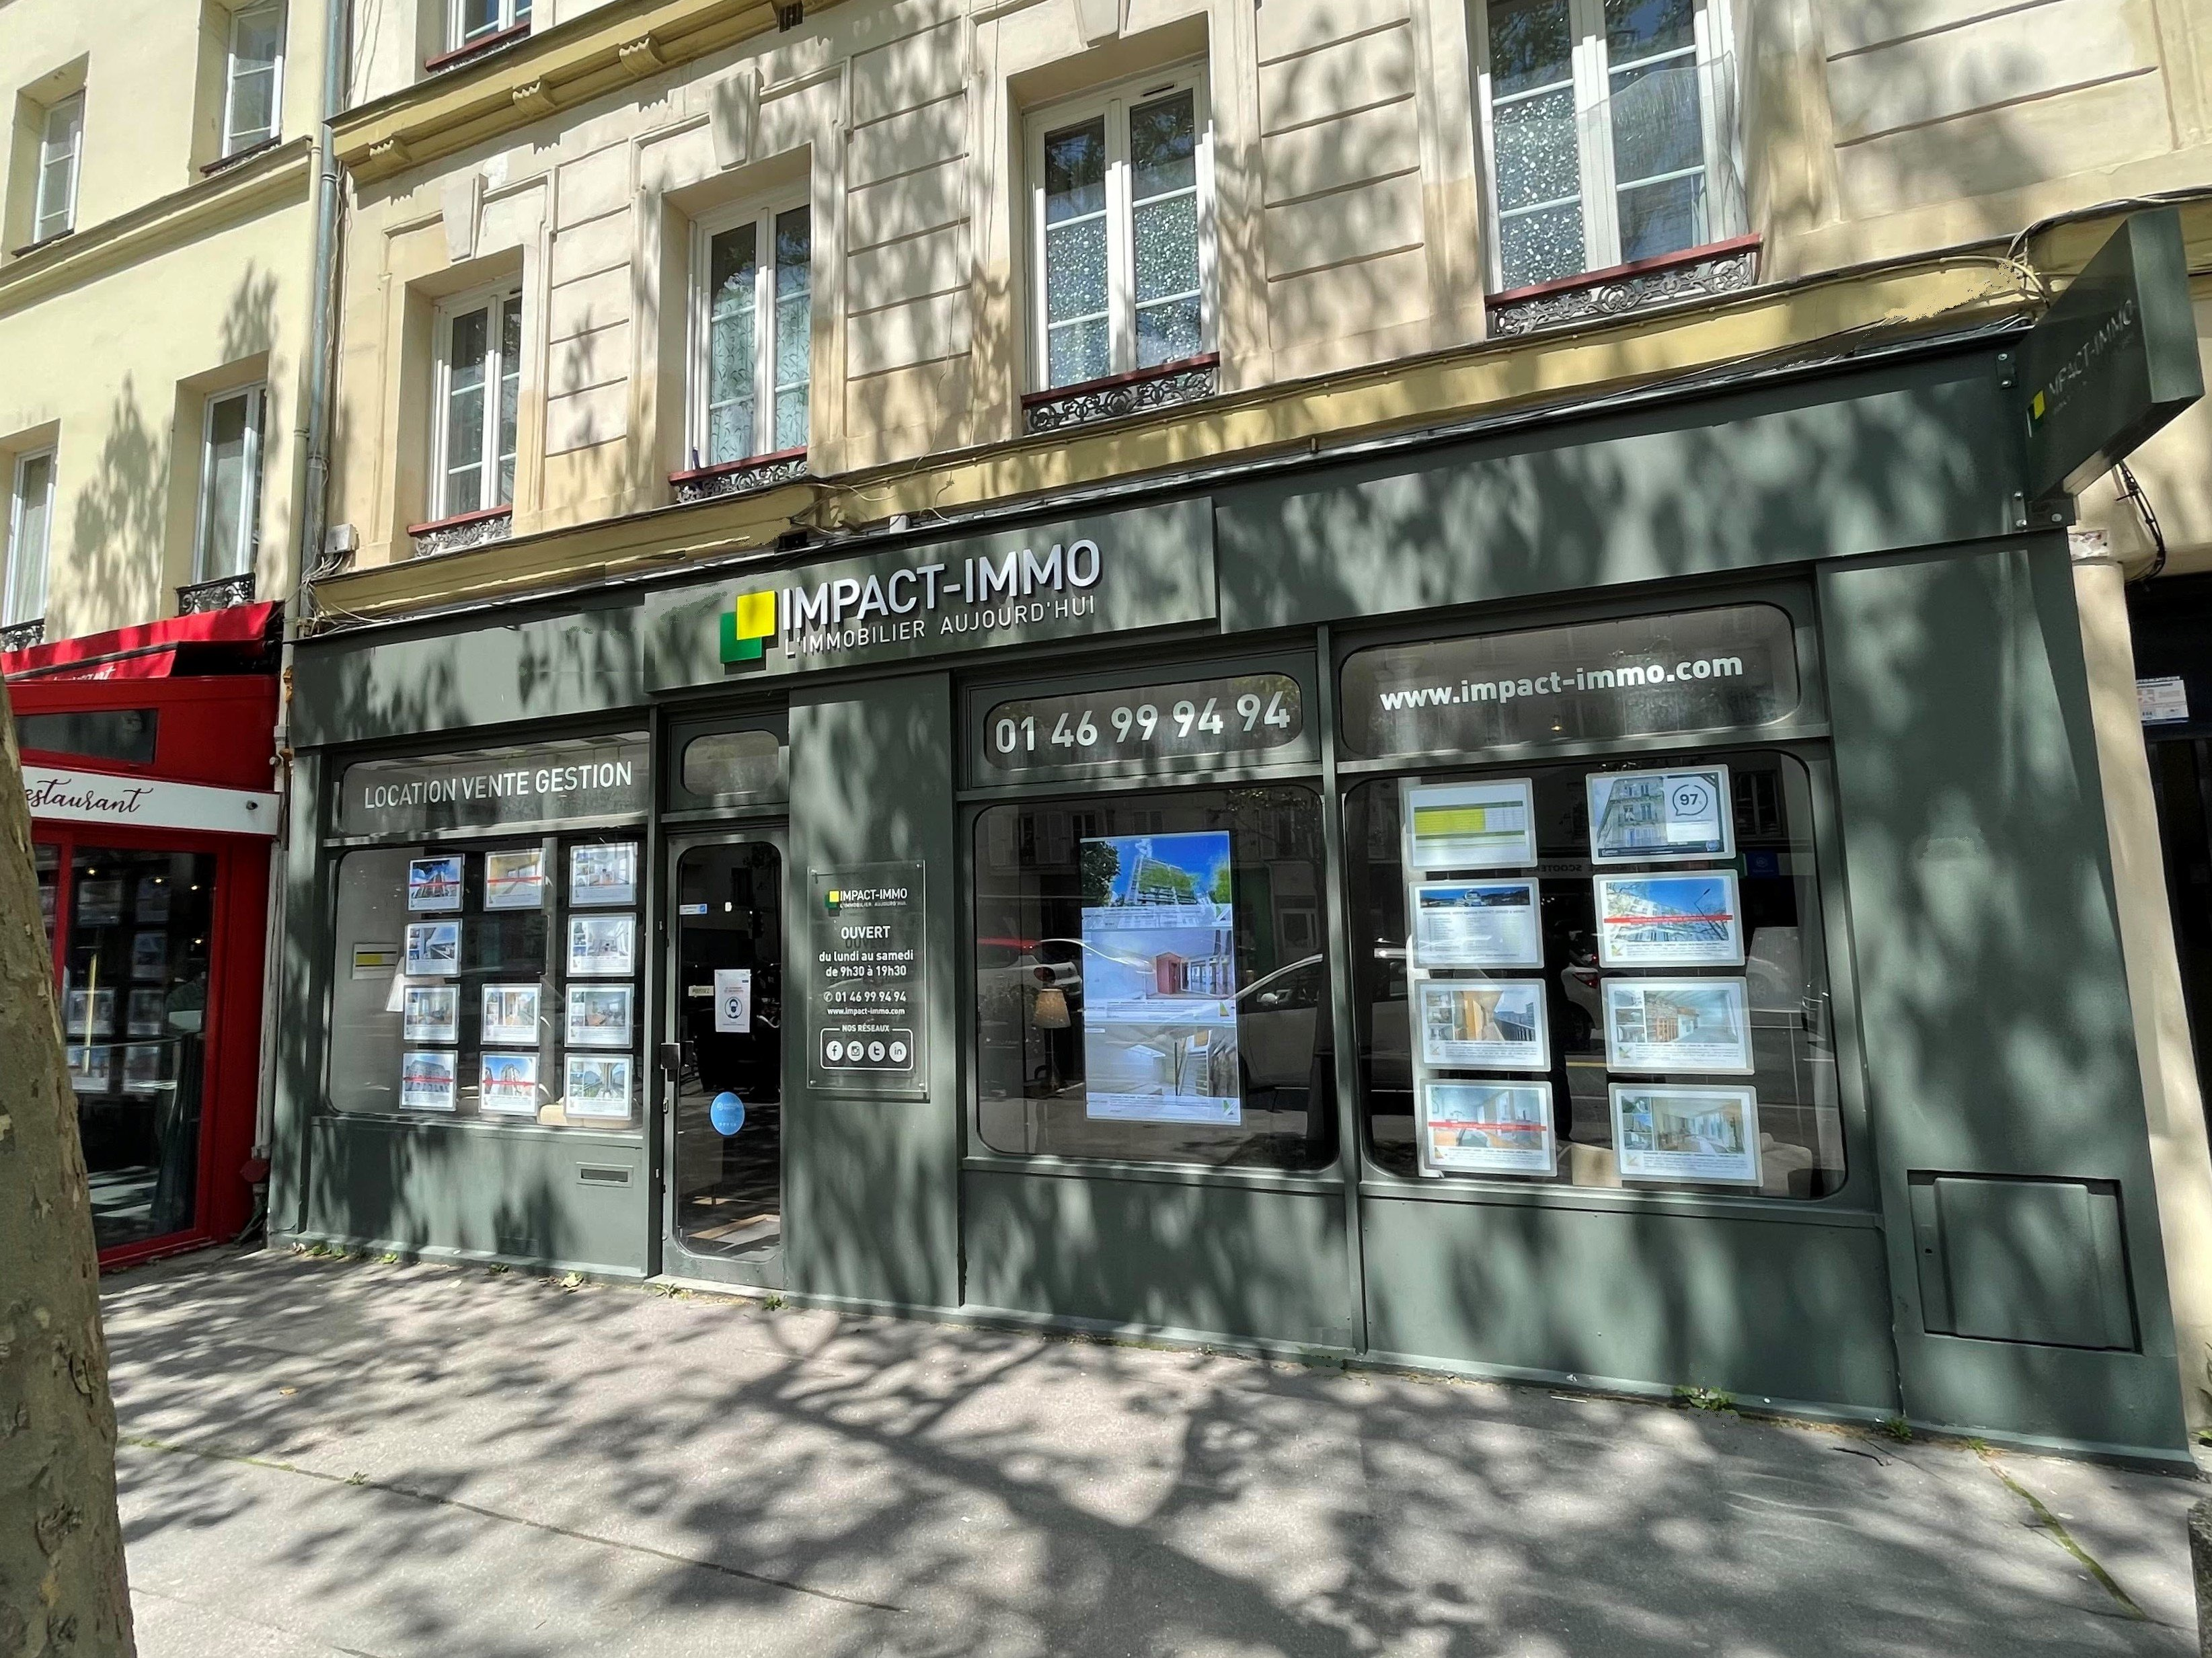 IMPACT IMMO BOULOGNE